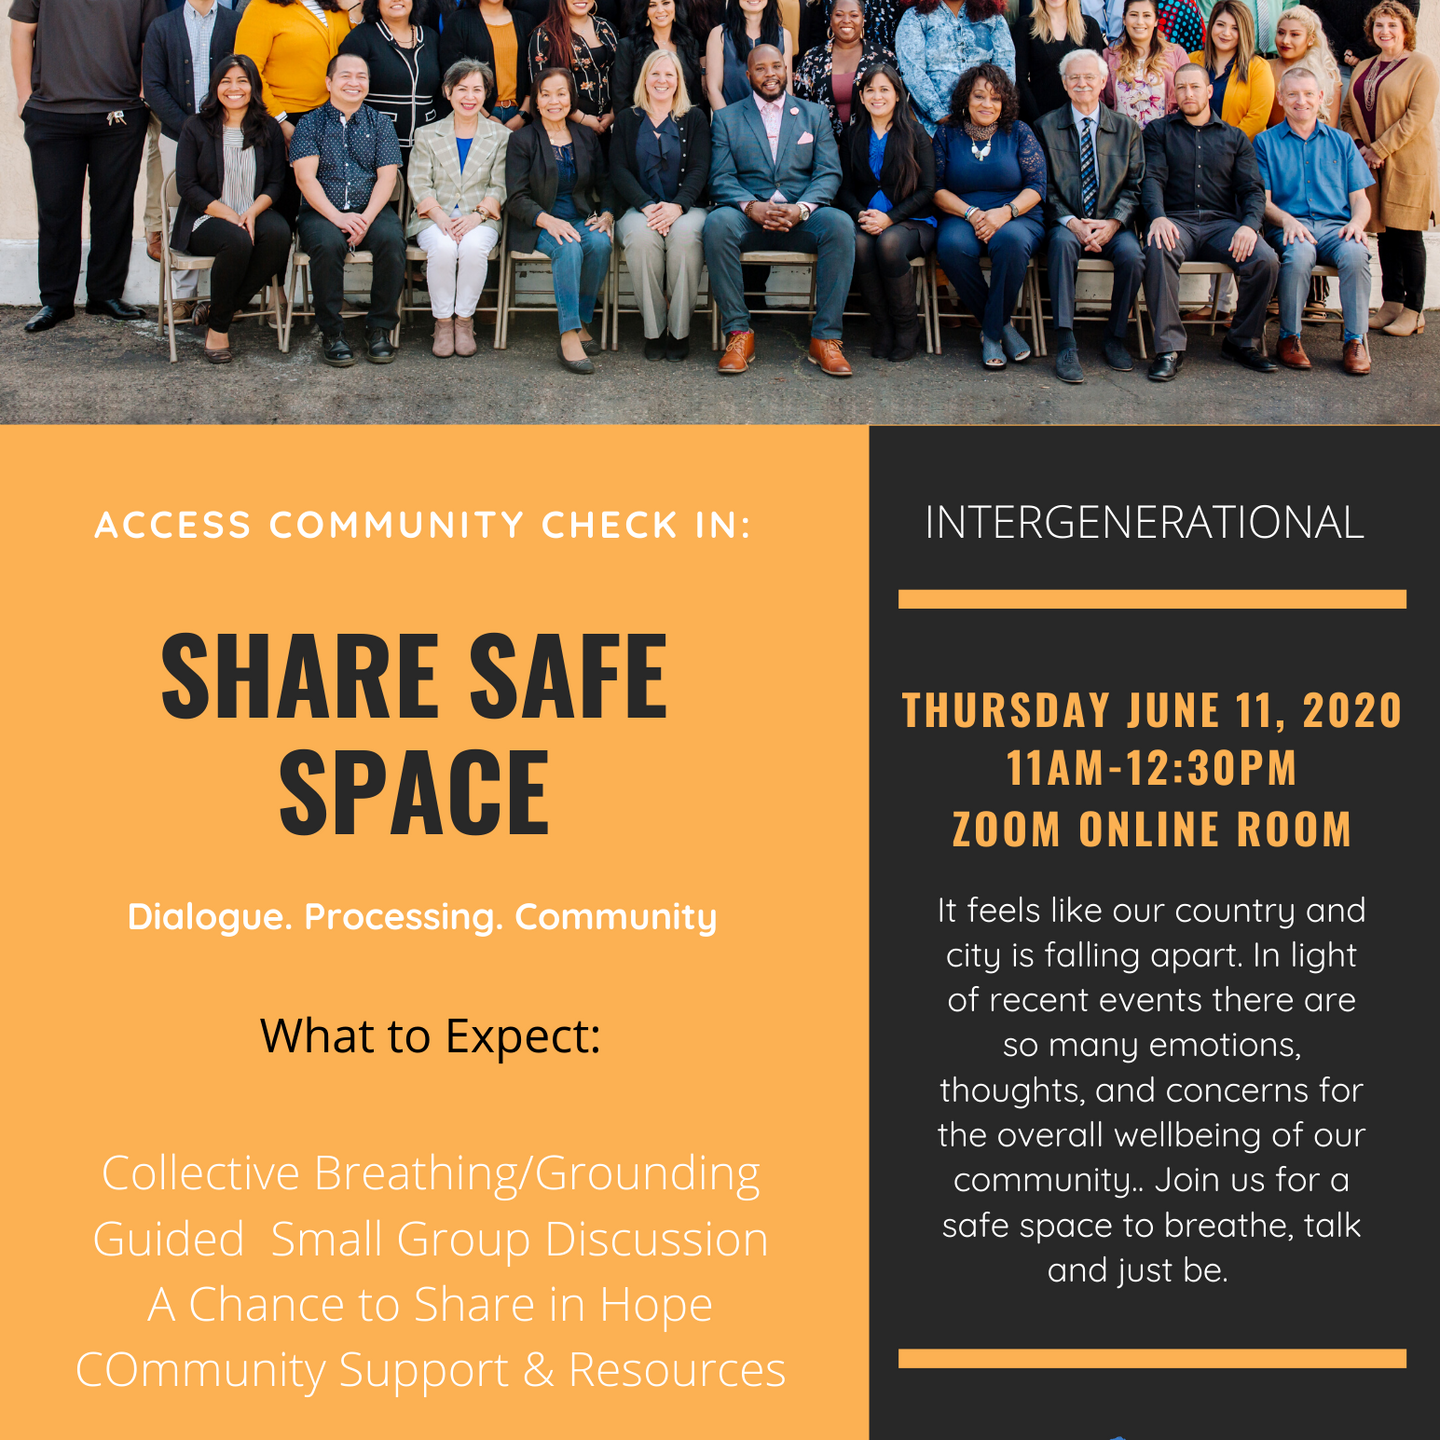 Share Safe Space